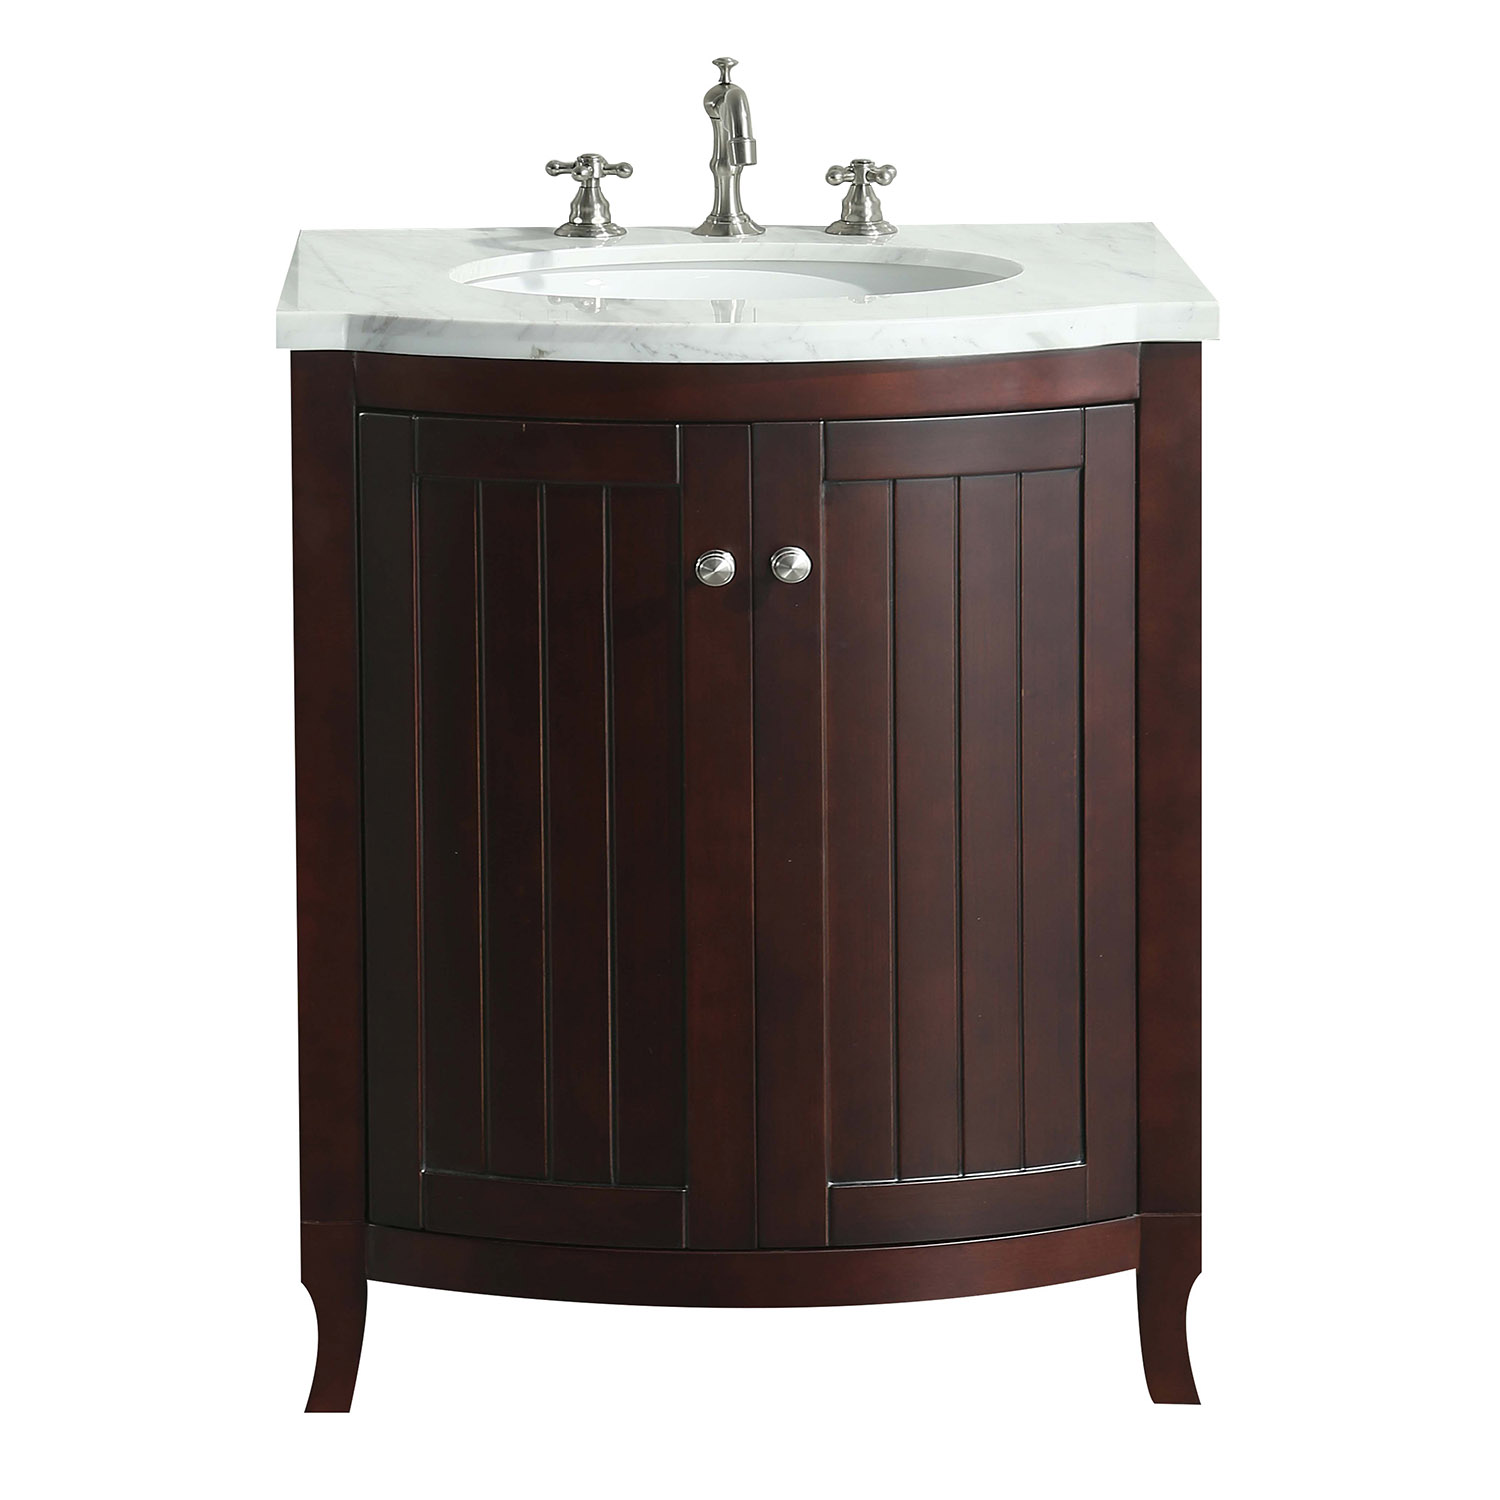 "EVVN04 24TK A Main - Eviva Odessa Zinx+ Dark Teak 24"" Bathroom Vanity with White Carrera Marble Counter-top and Porcelain Sink"